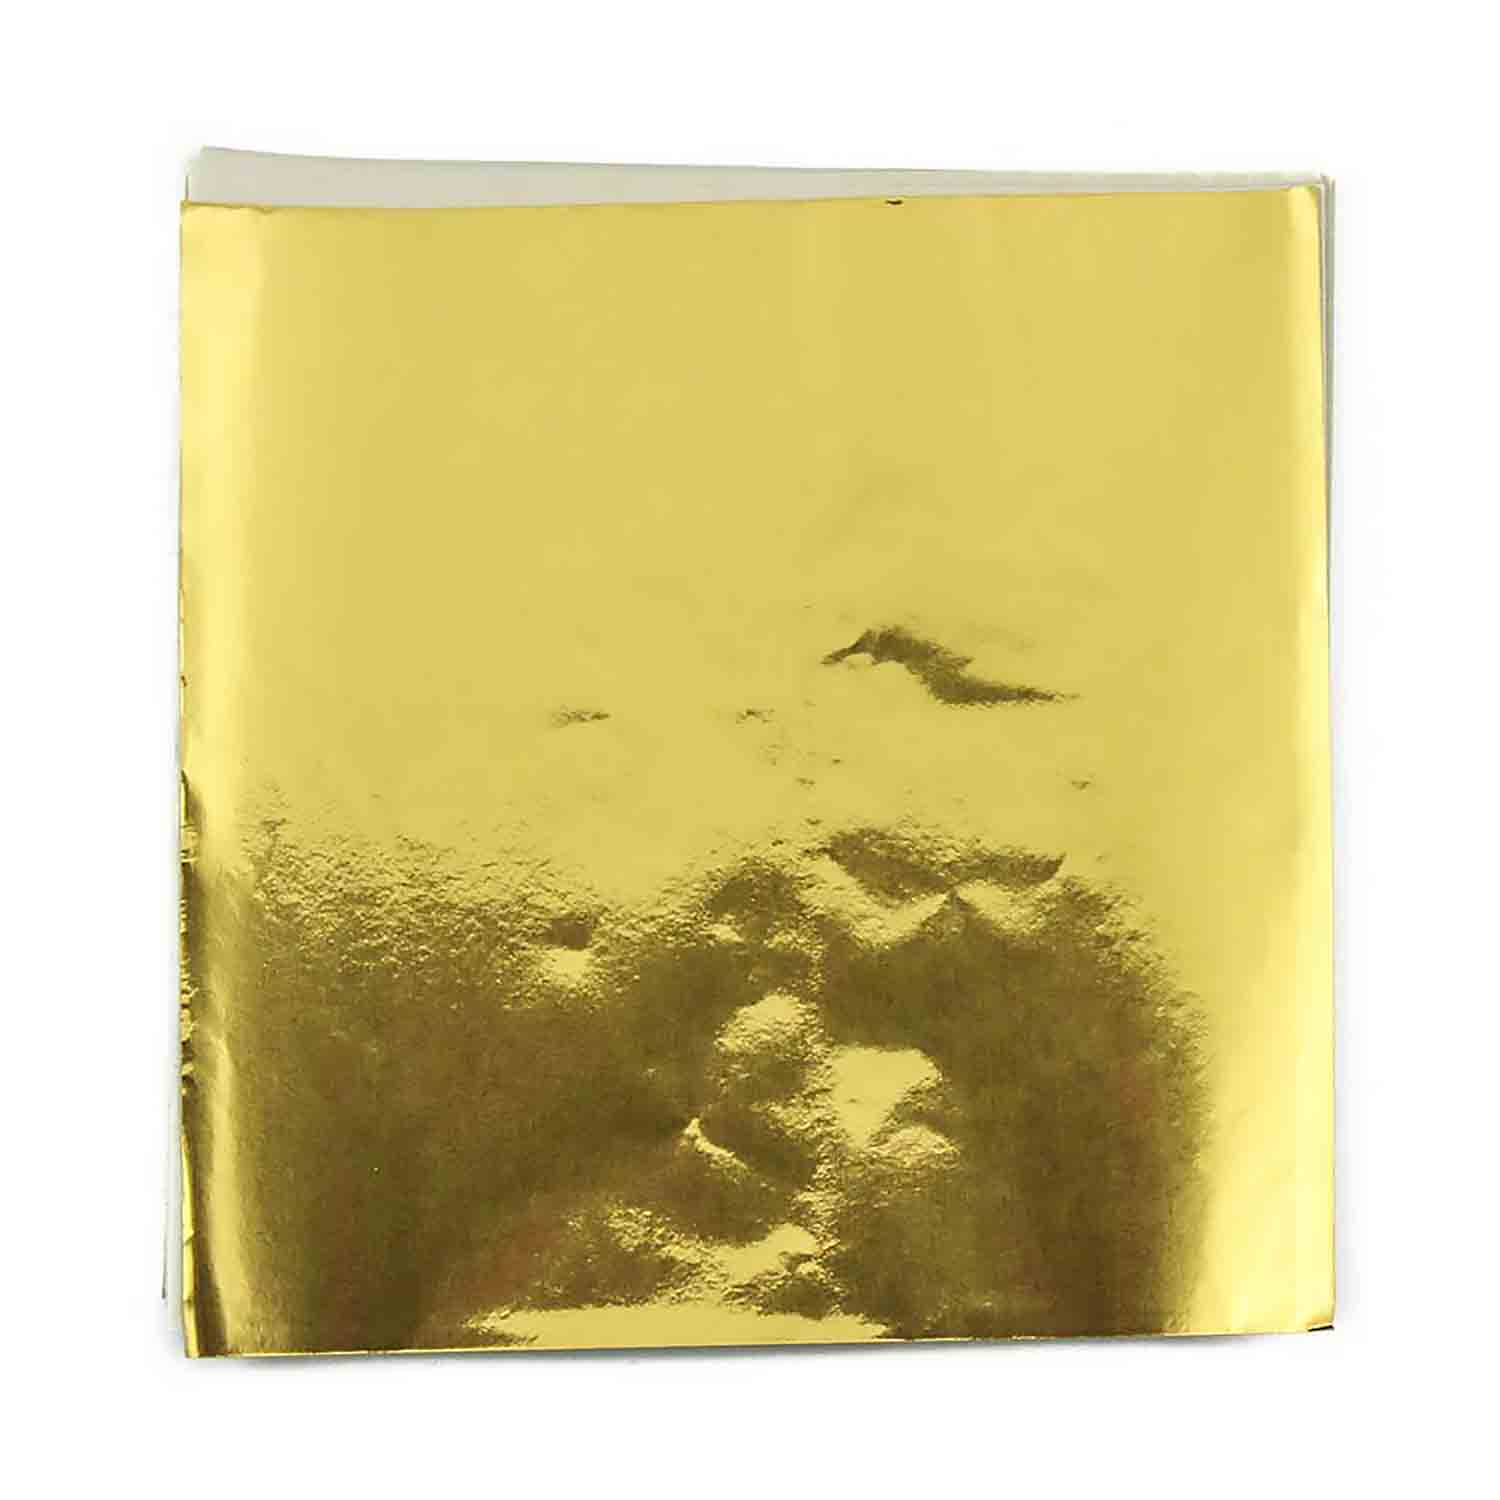 "8 x 8"" Foil Wrapper Gold"